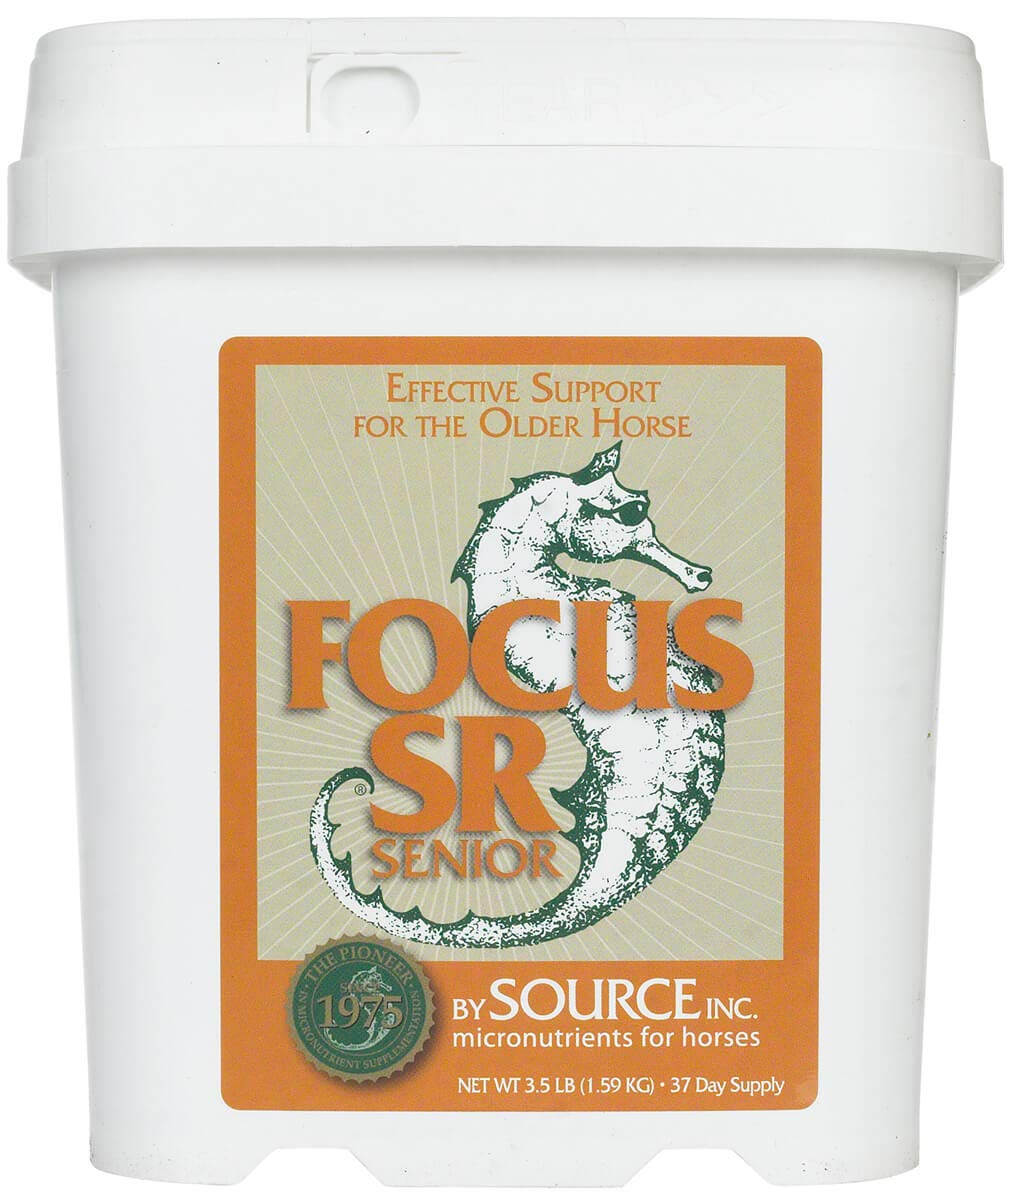 Focus 3.5 lb SR Senior Equine Supplement to Help Maintain Weight, Energy and Good Overall Health by Source INC.